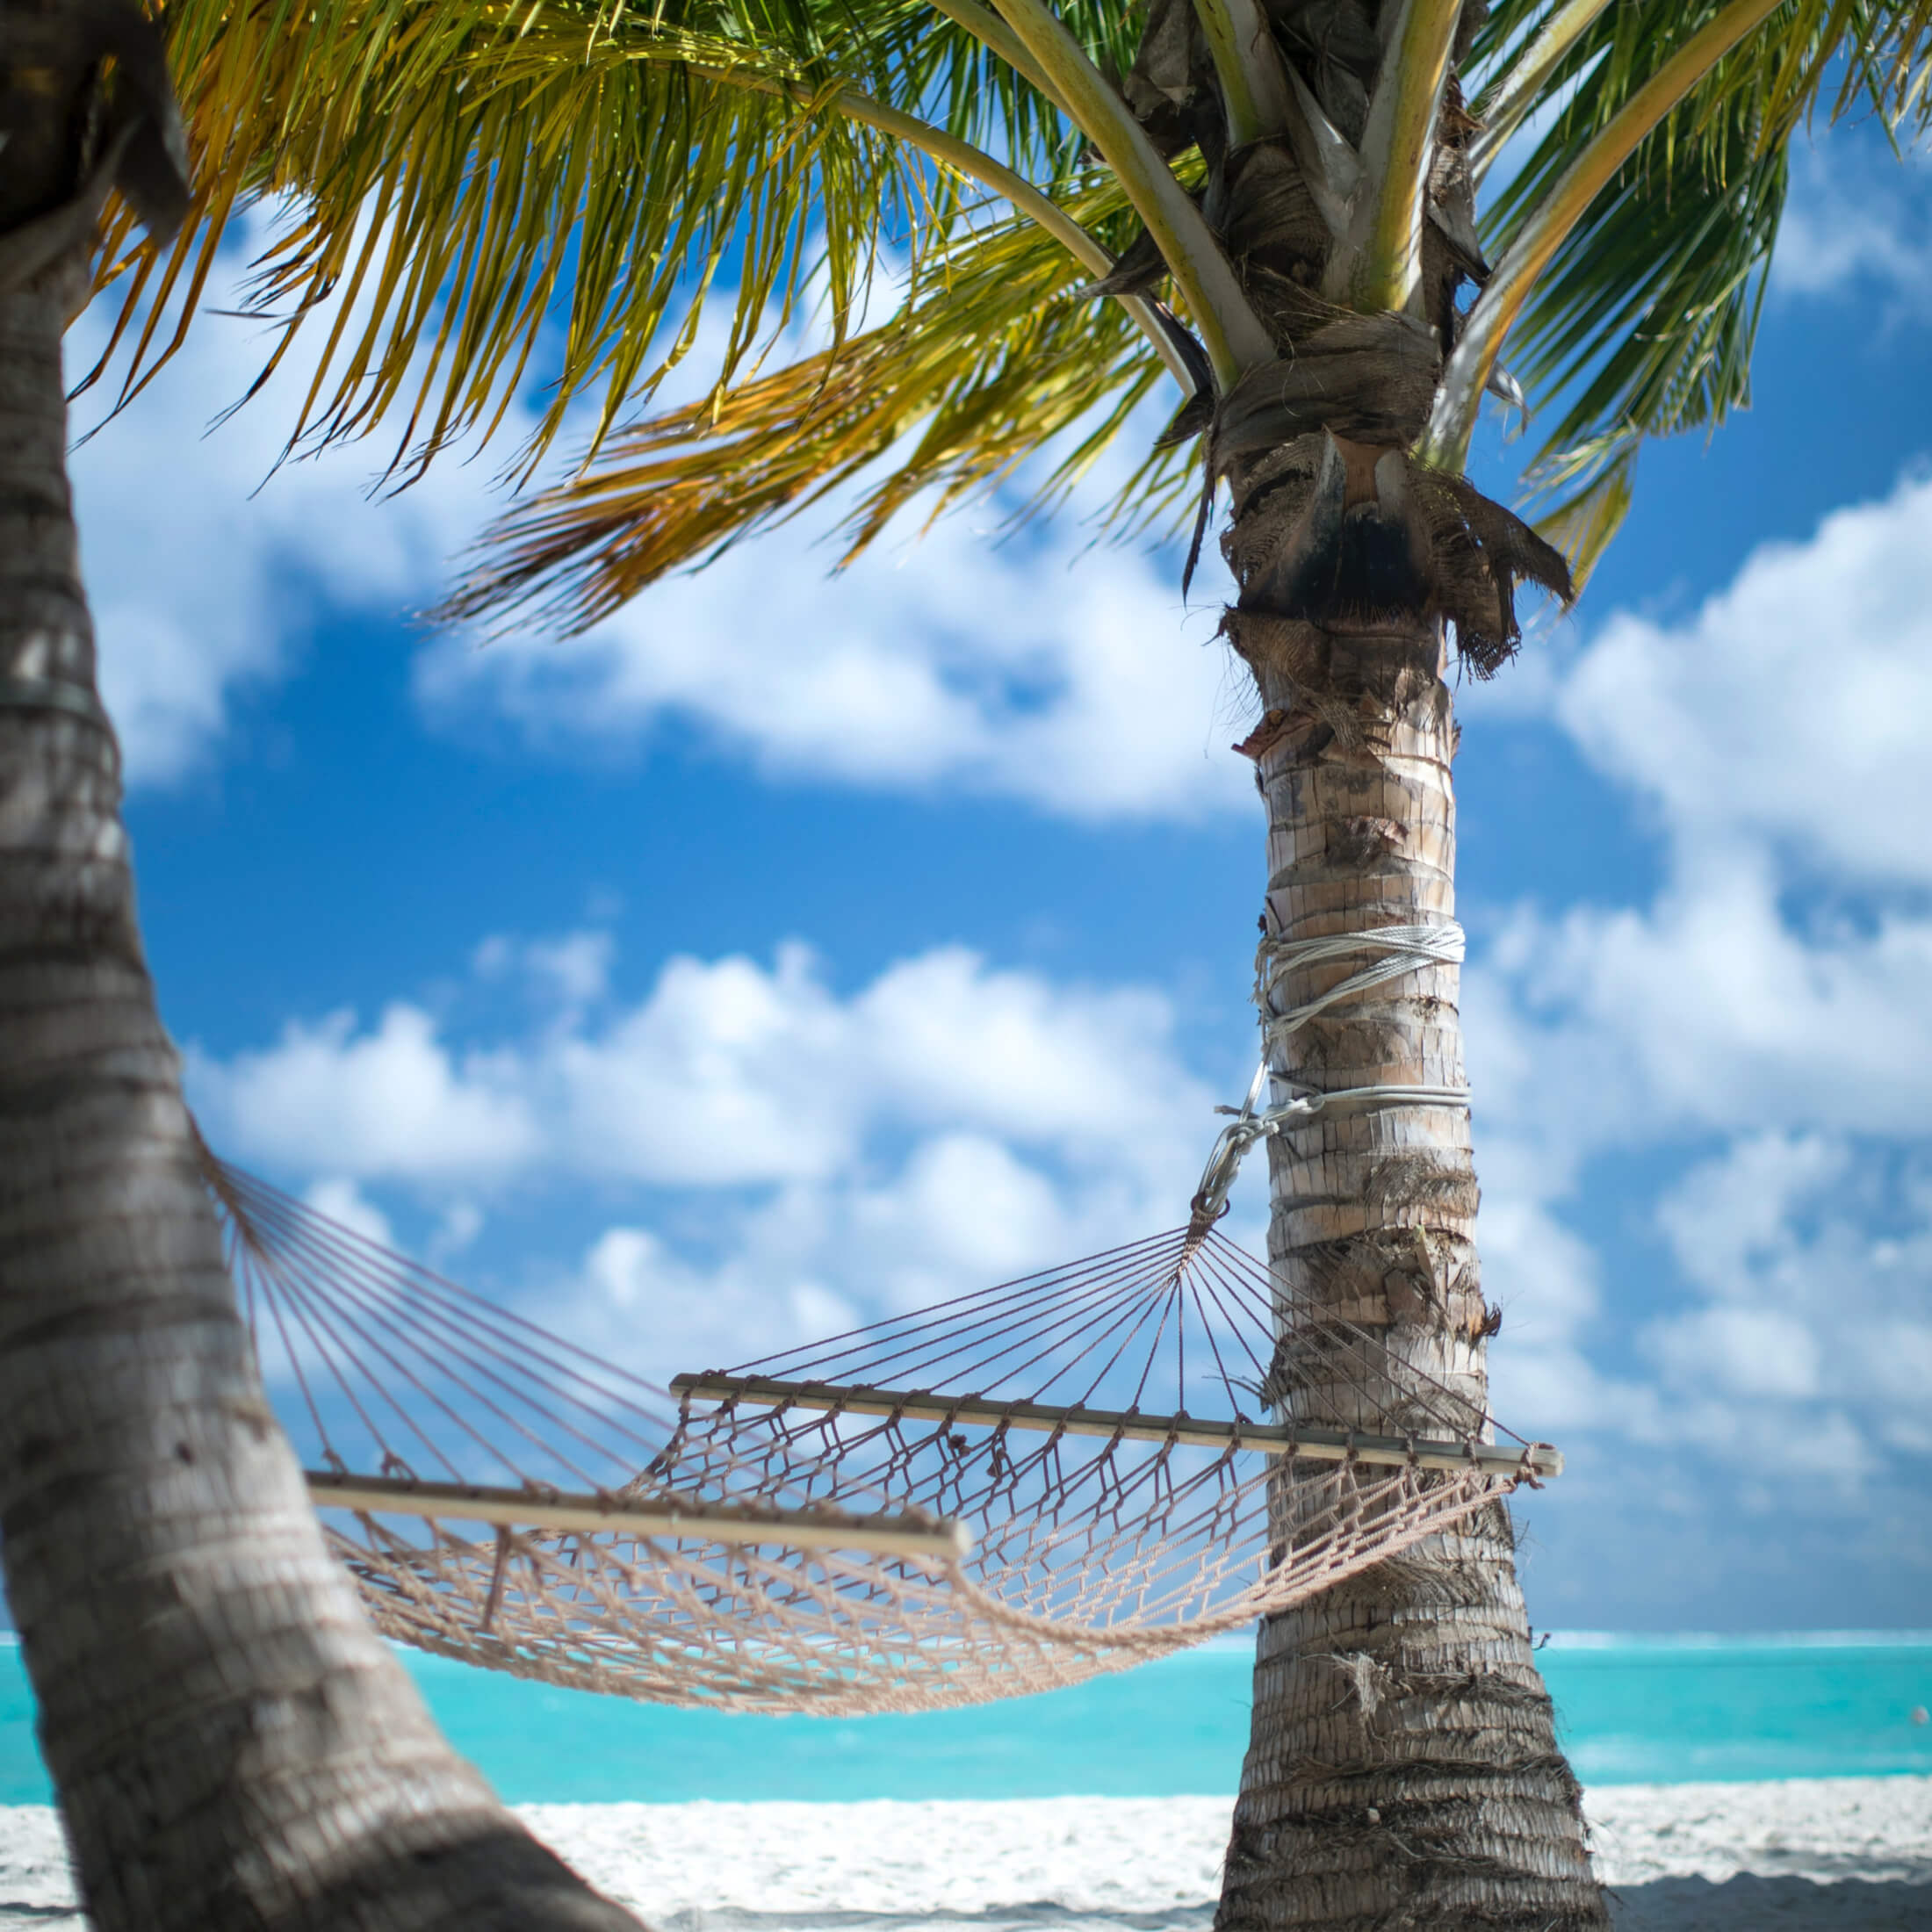 Photo of palms trees and hammock on a tropical beach by Mohamed Ajufaan on Unsplash